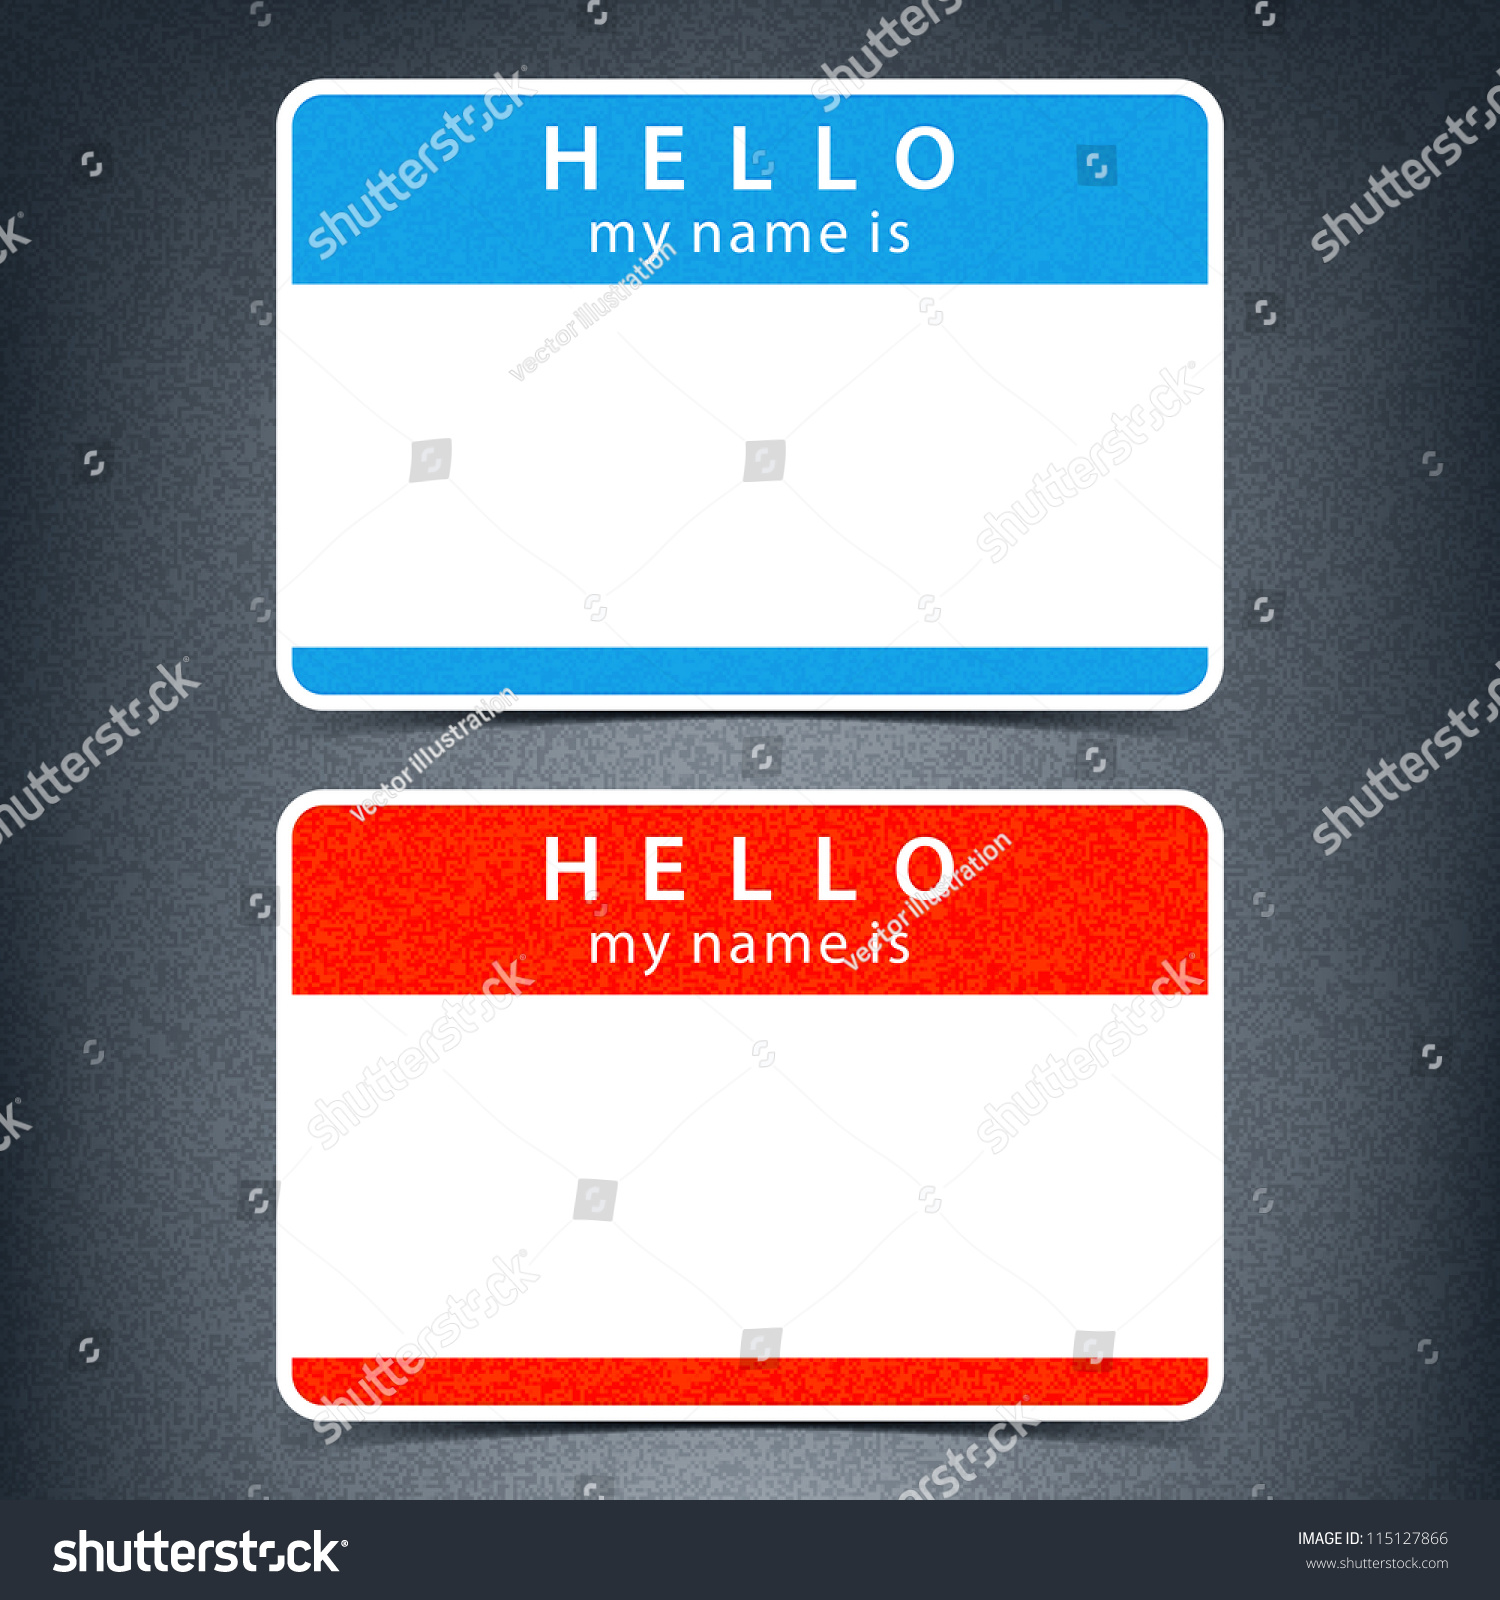 H tag background image - Blue And Red Name Tag Blank Sticker Hello My Name Is With Drop Black Shadow On